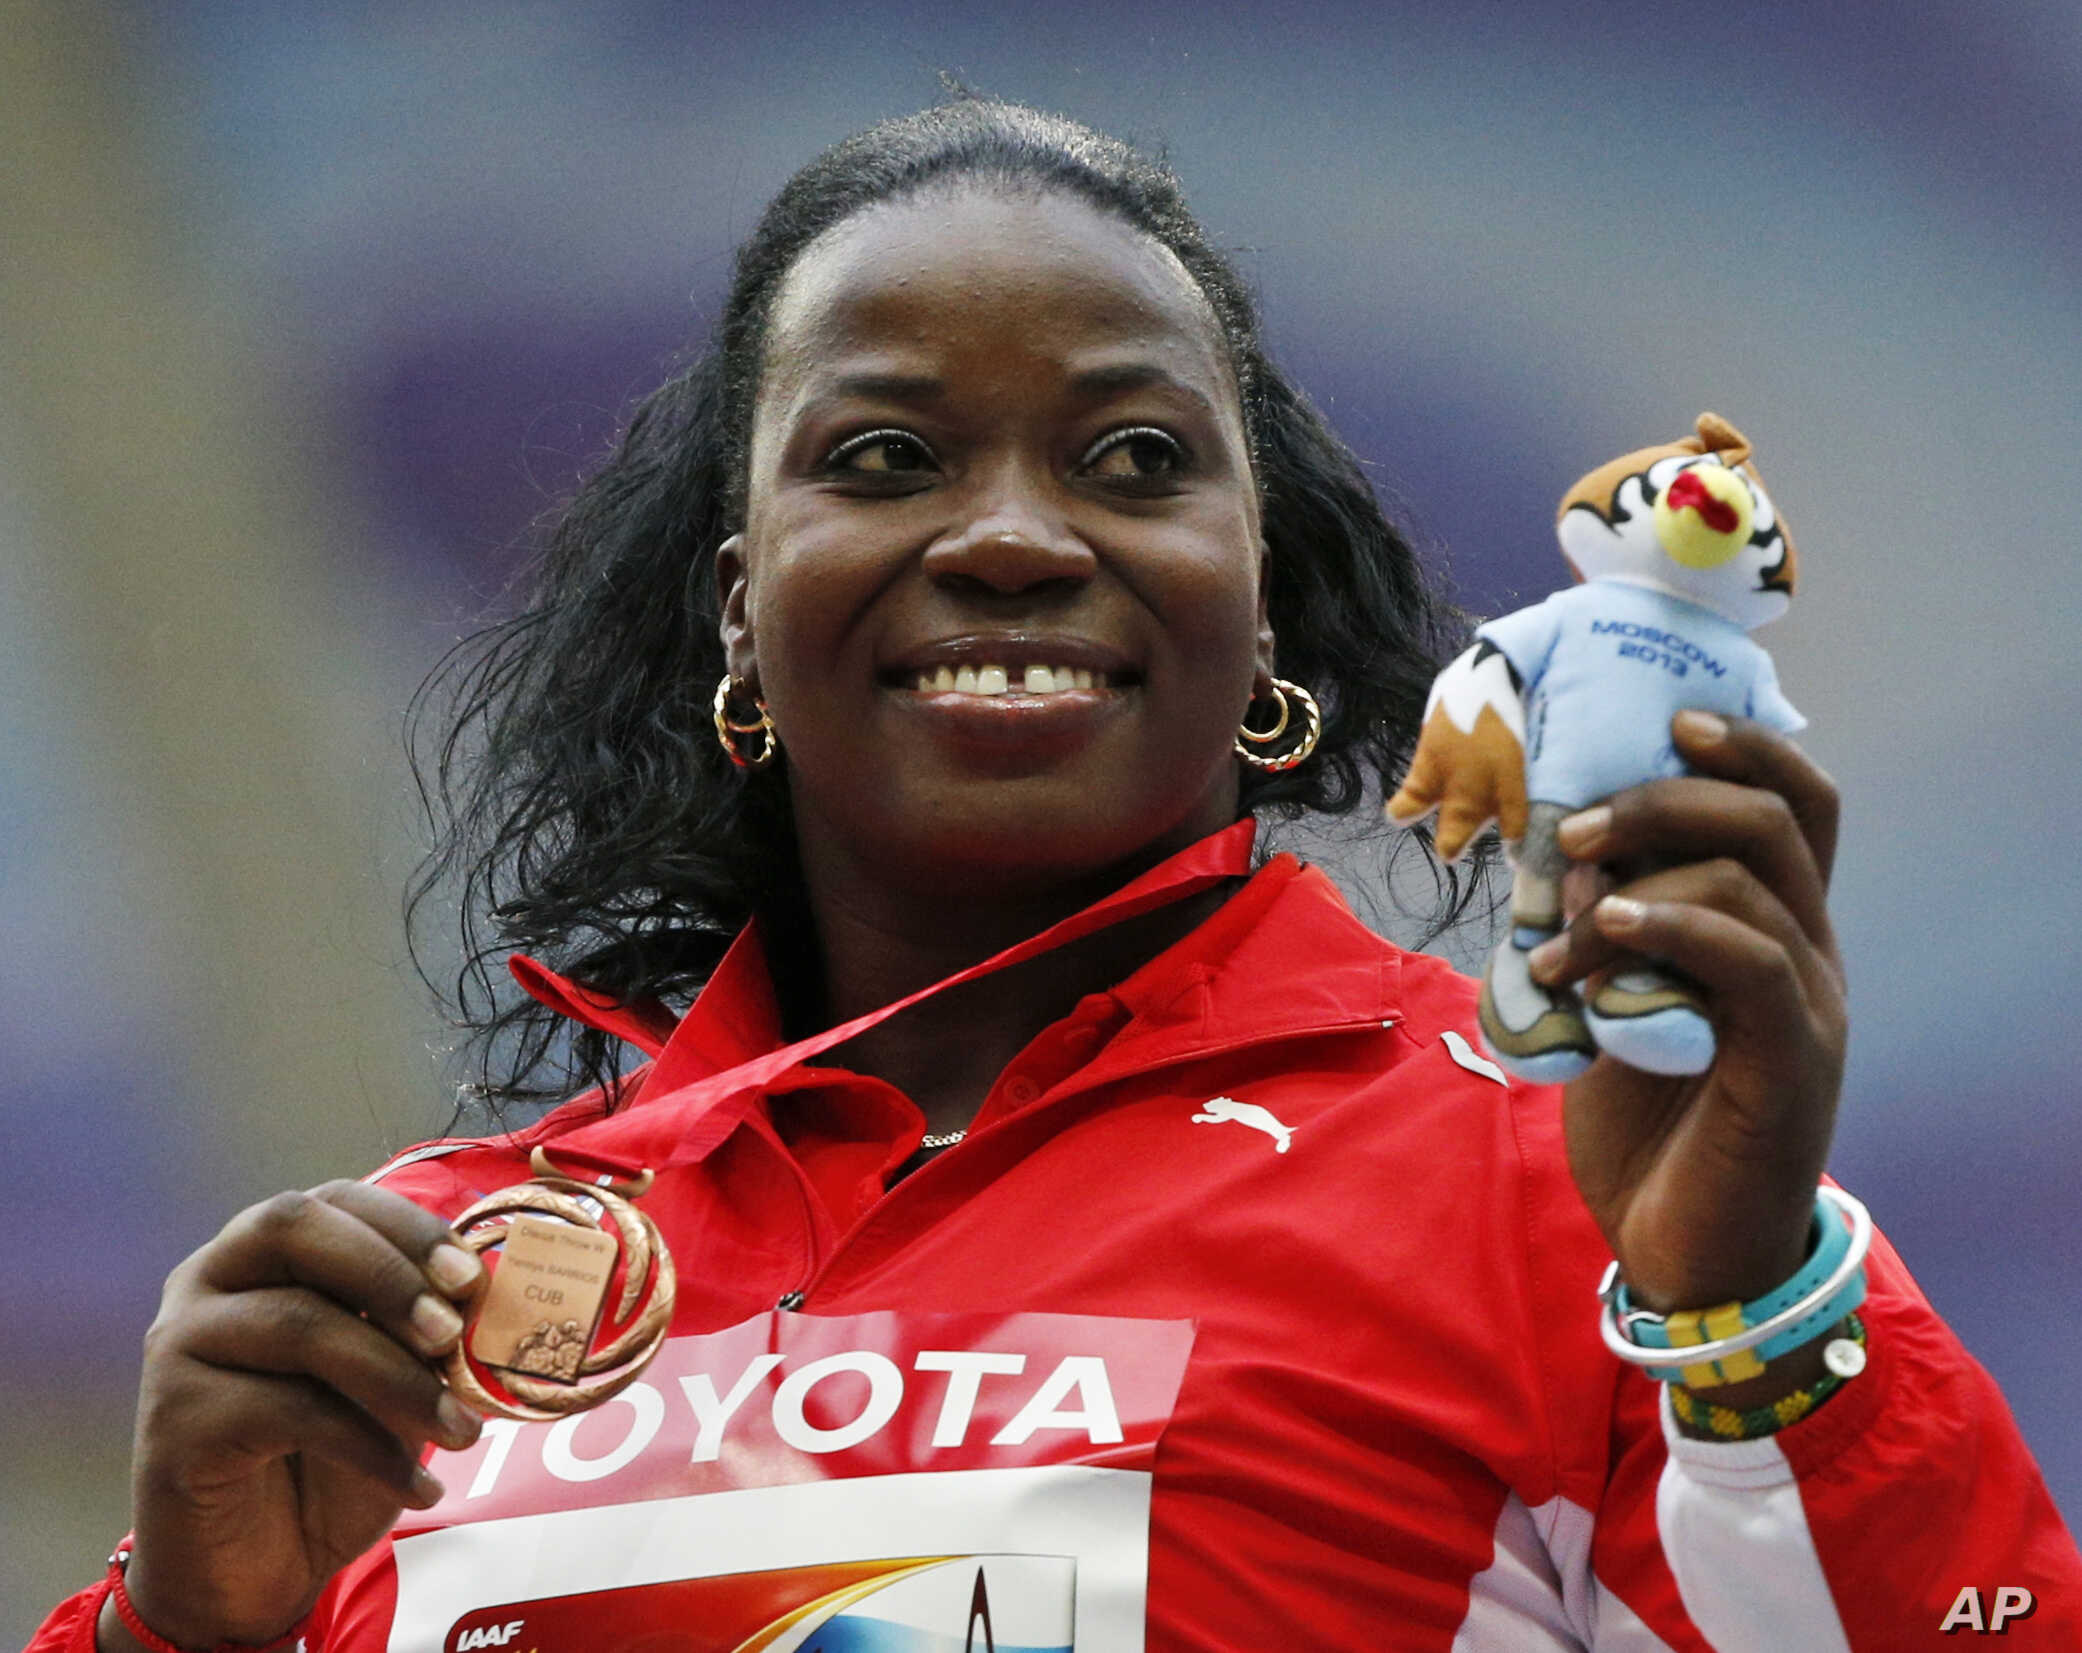 FILE - Cuba's Yarelys Barrios poses with her bronze medal for the women's discus throw during the medals ceremony at the World Athletics Championships in the Luzhniki stadium in Moscow, Russia, Aug. 12, 2013. She was stripped of the silver medal in t